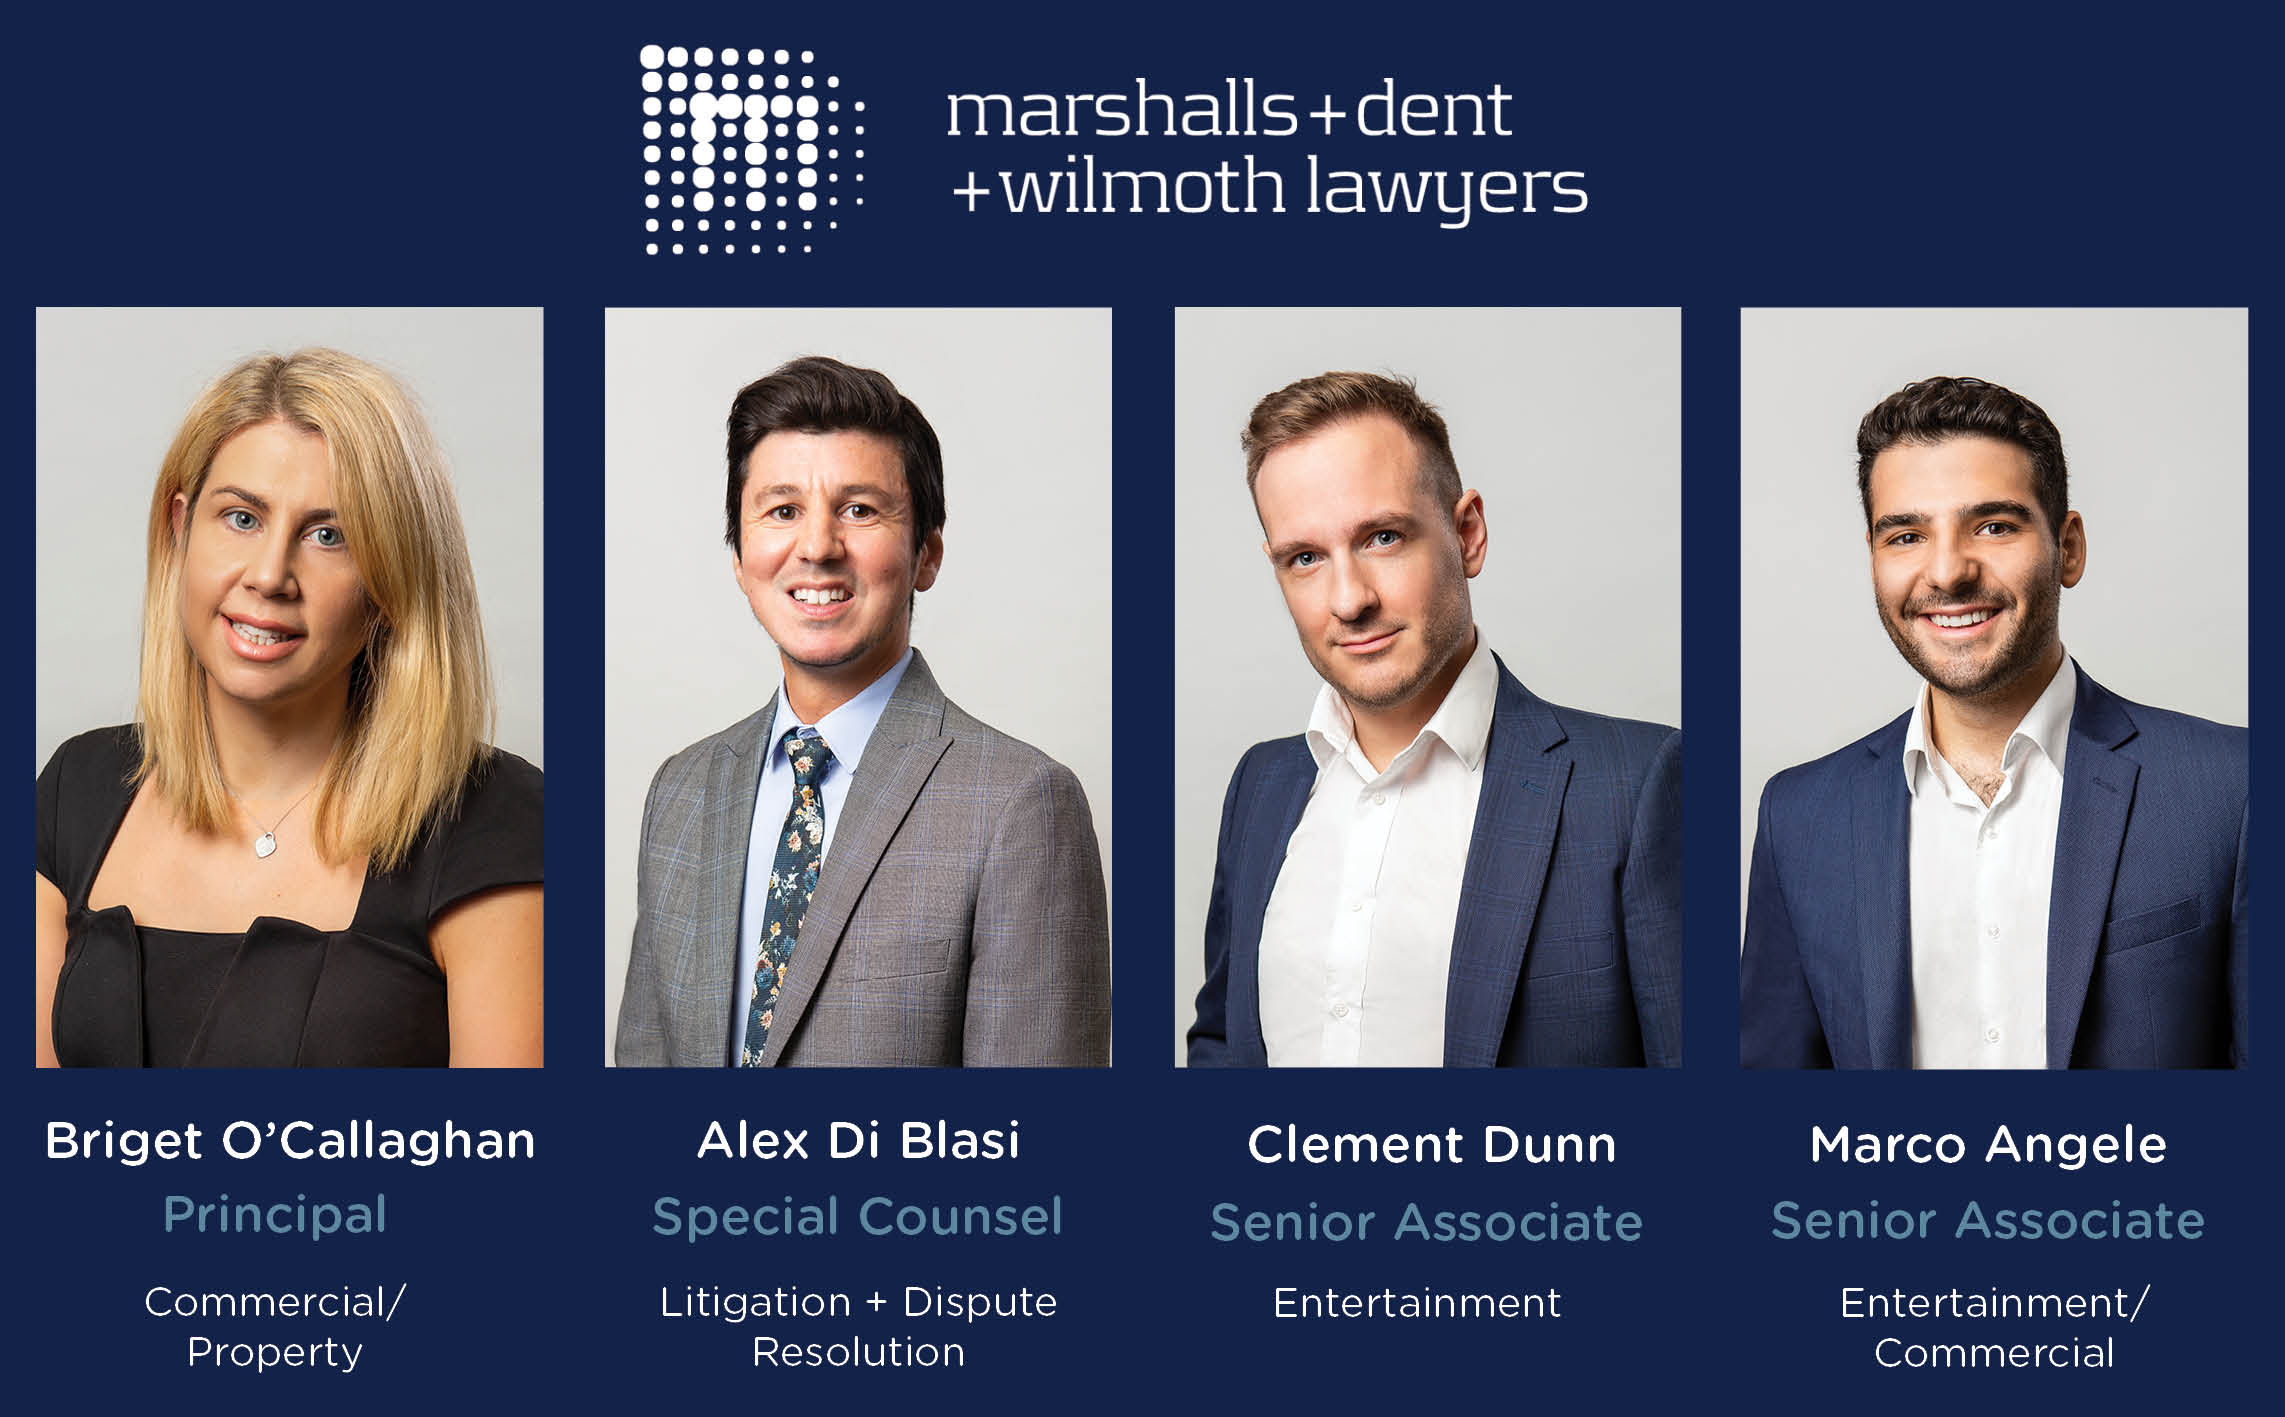 MDW lawyers promoted to key positions in Melbourne office